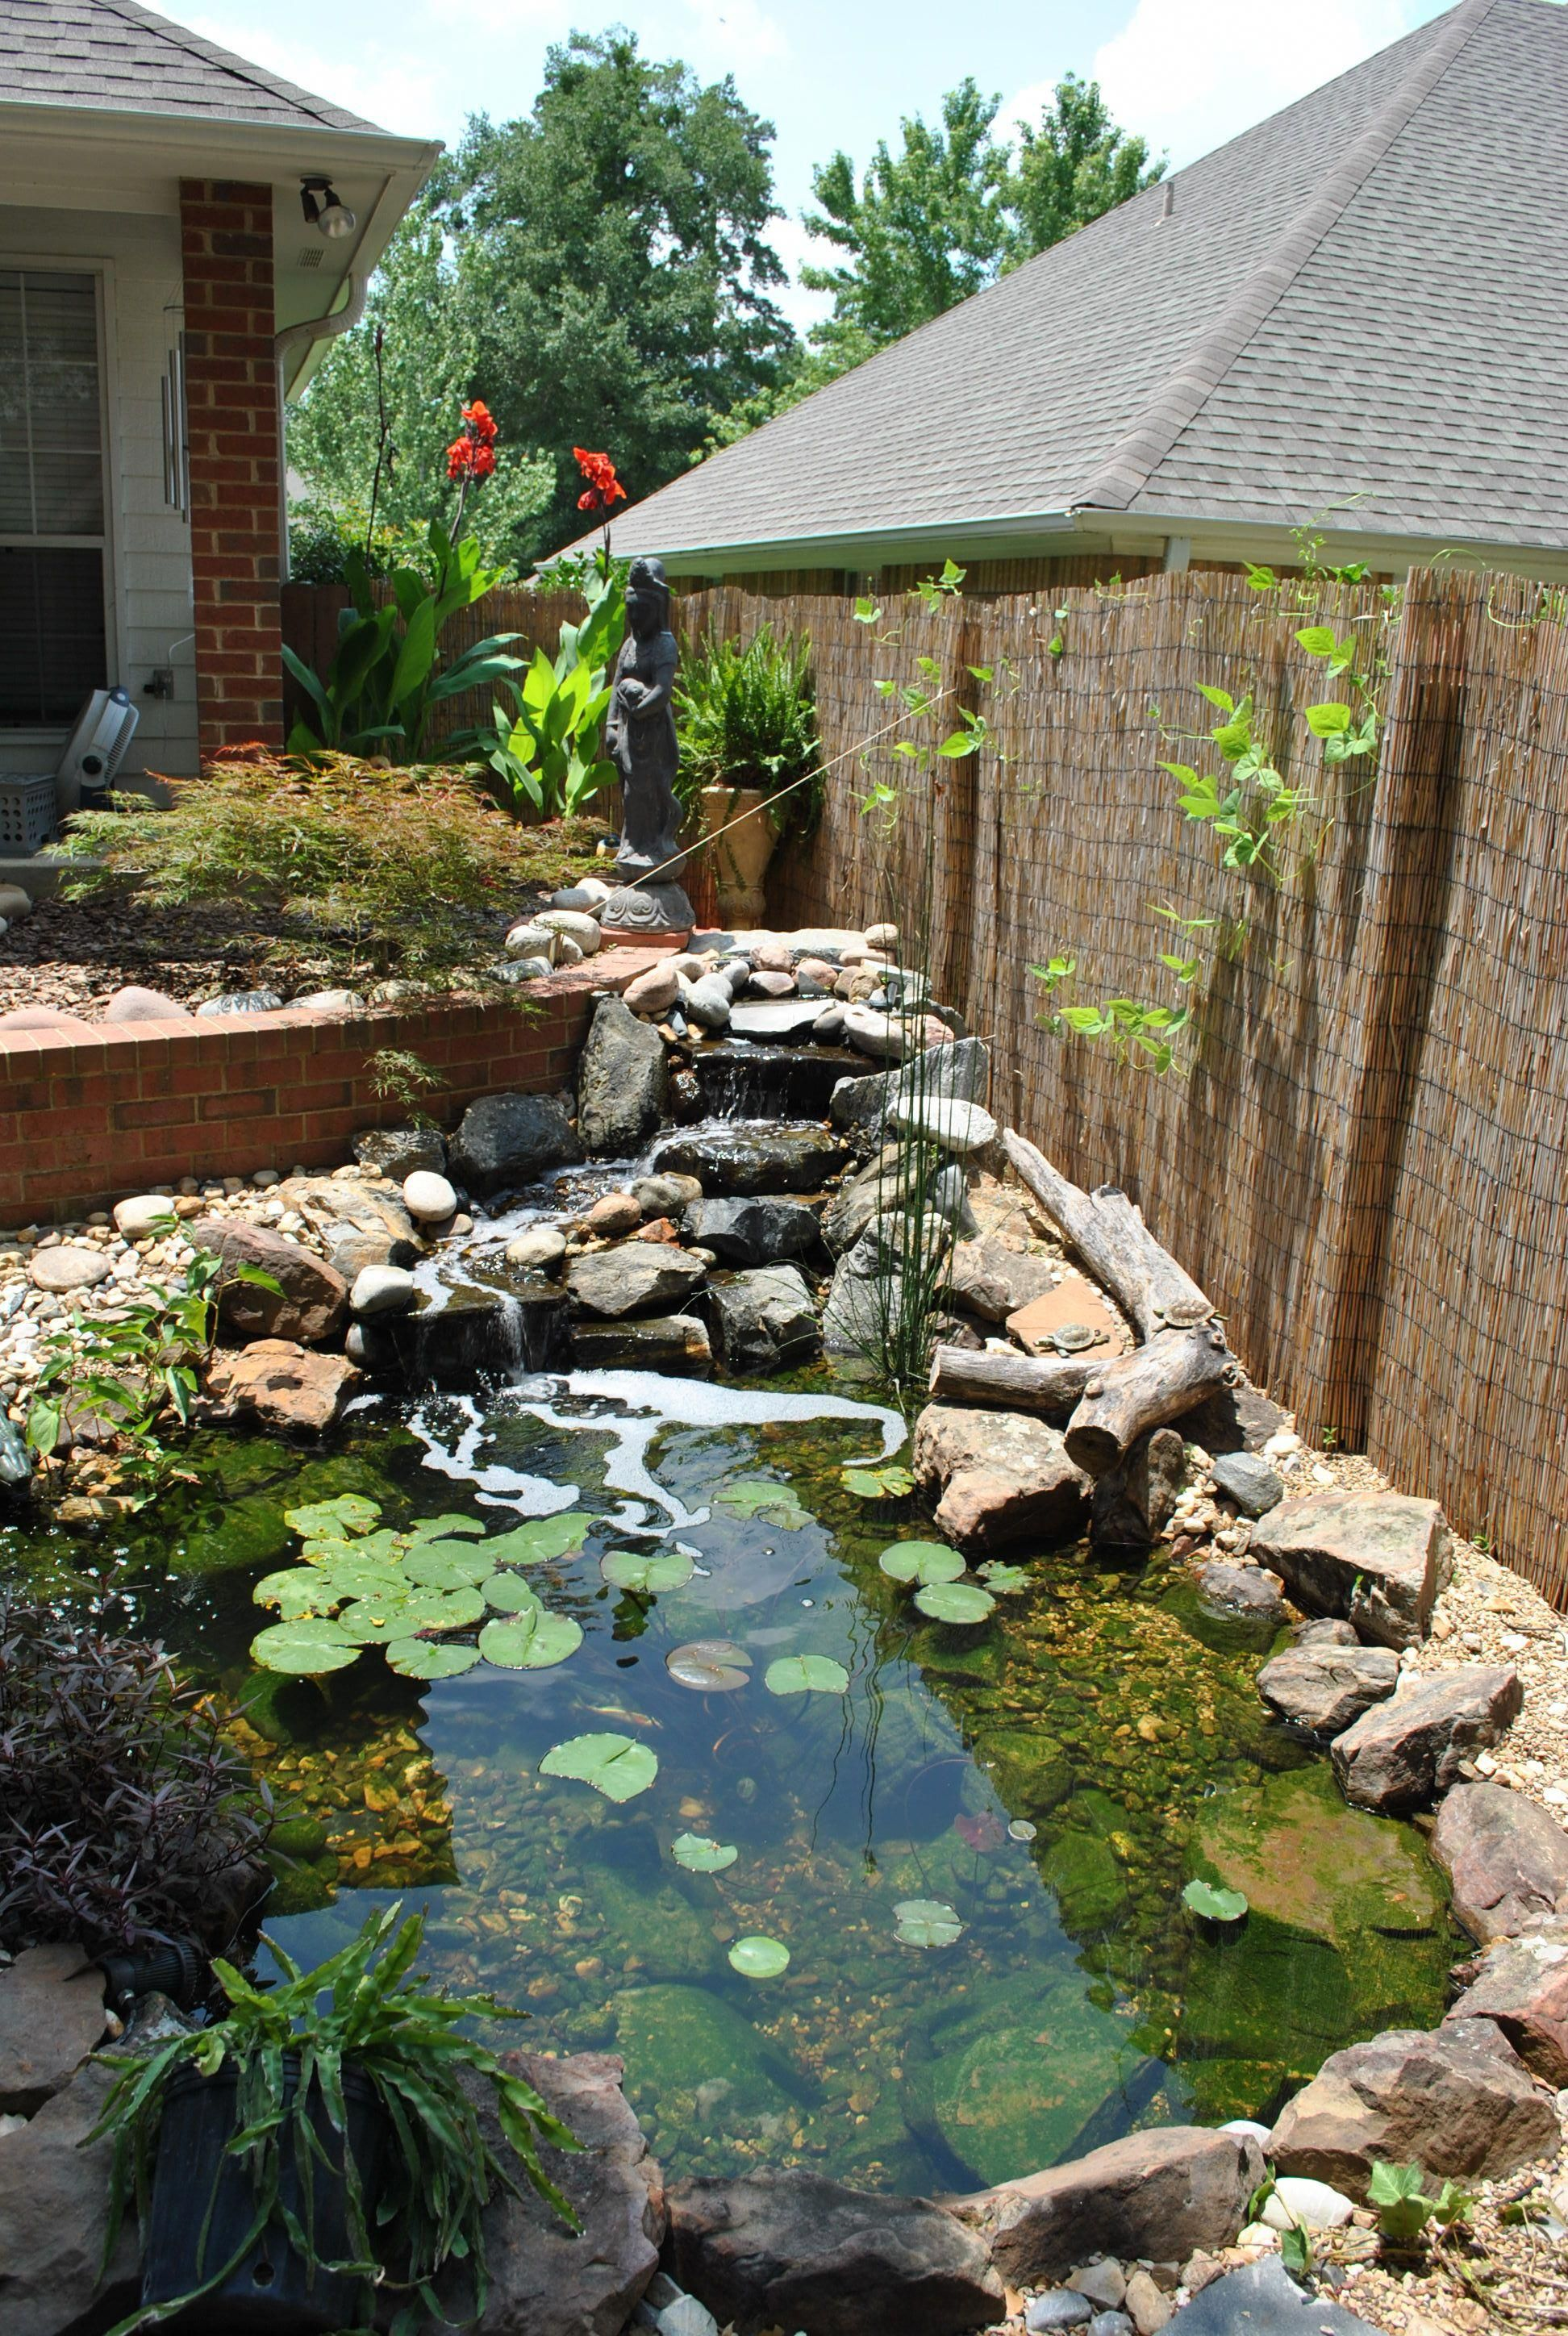 Backyard Pond In Frisco Tx With Awesome Bamboo Fence Pond Landscaping Ponds Backyard Fish Pond Gardens